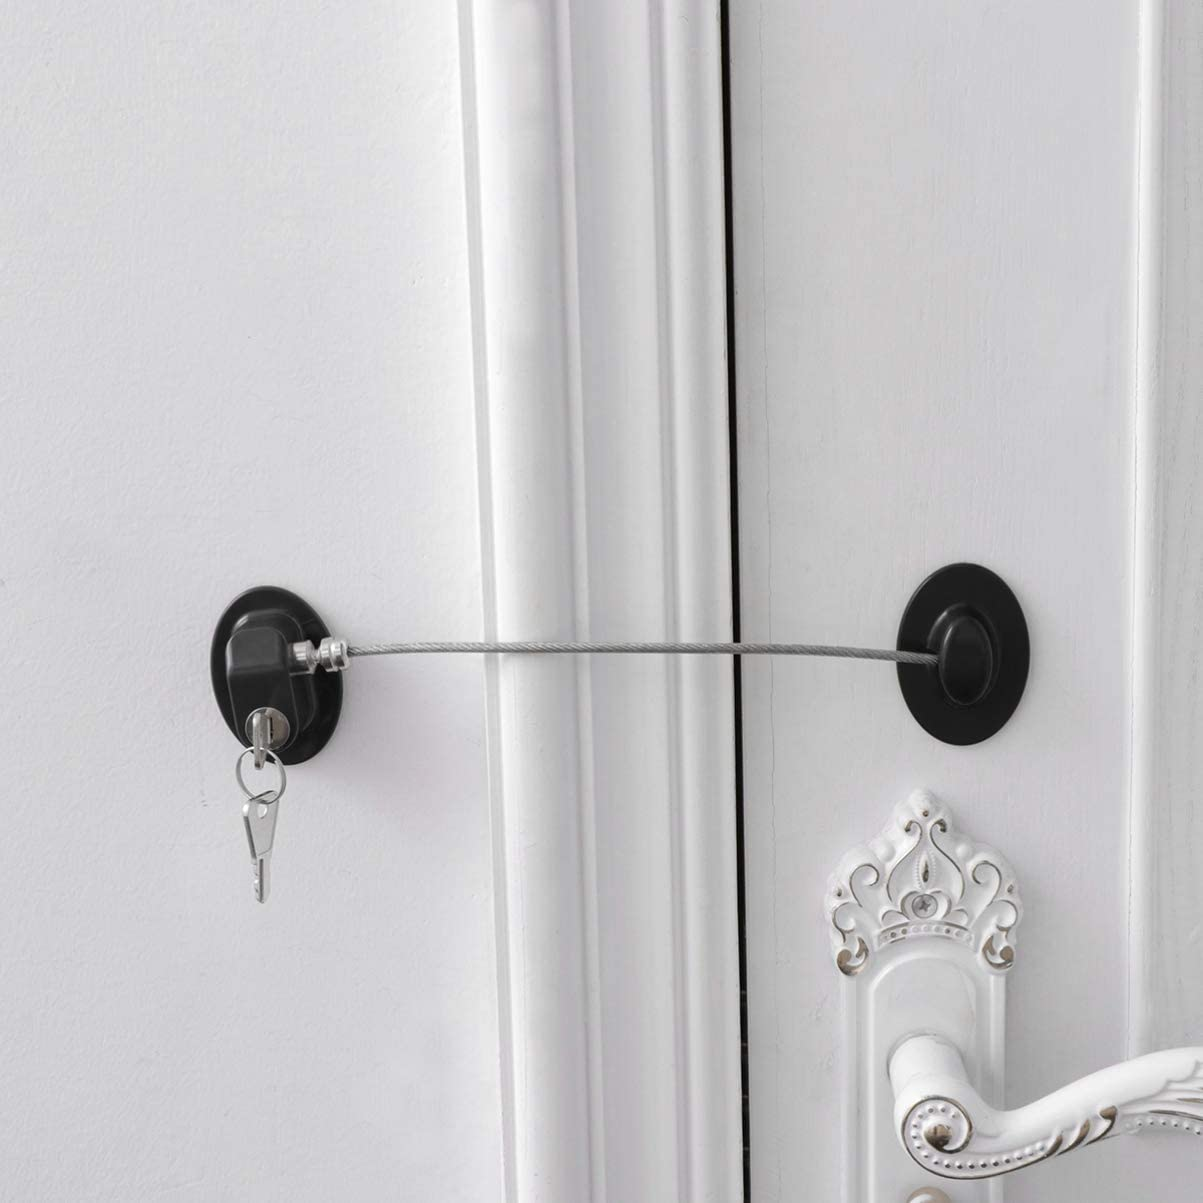 Black DOITOOL 1PC Refrigerator Door Lock with 2 Keys for Fridge Lock Security for Child Safety Window Locks Cabinet Locks with Keys for Home Dorm Apartment Office